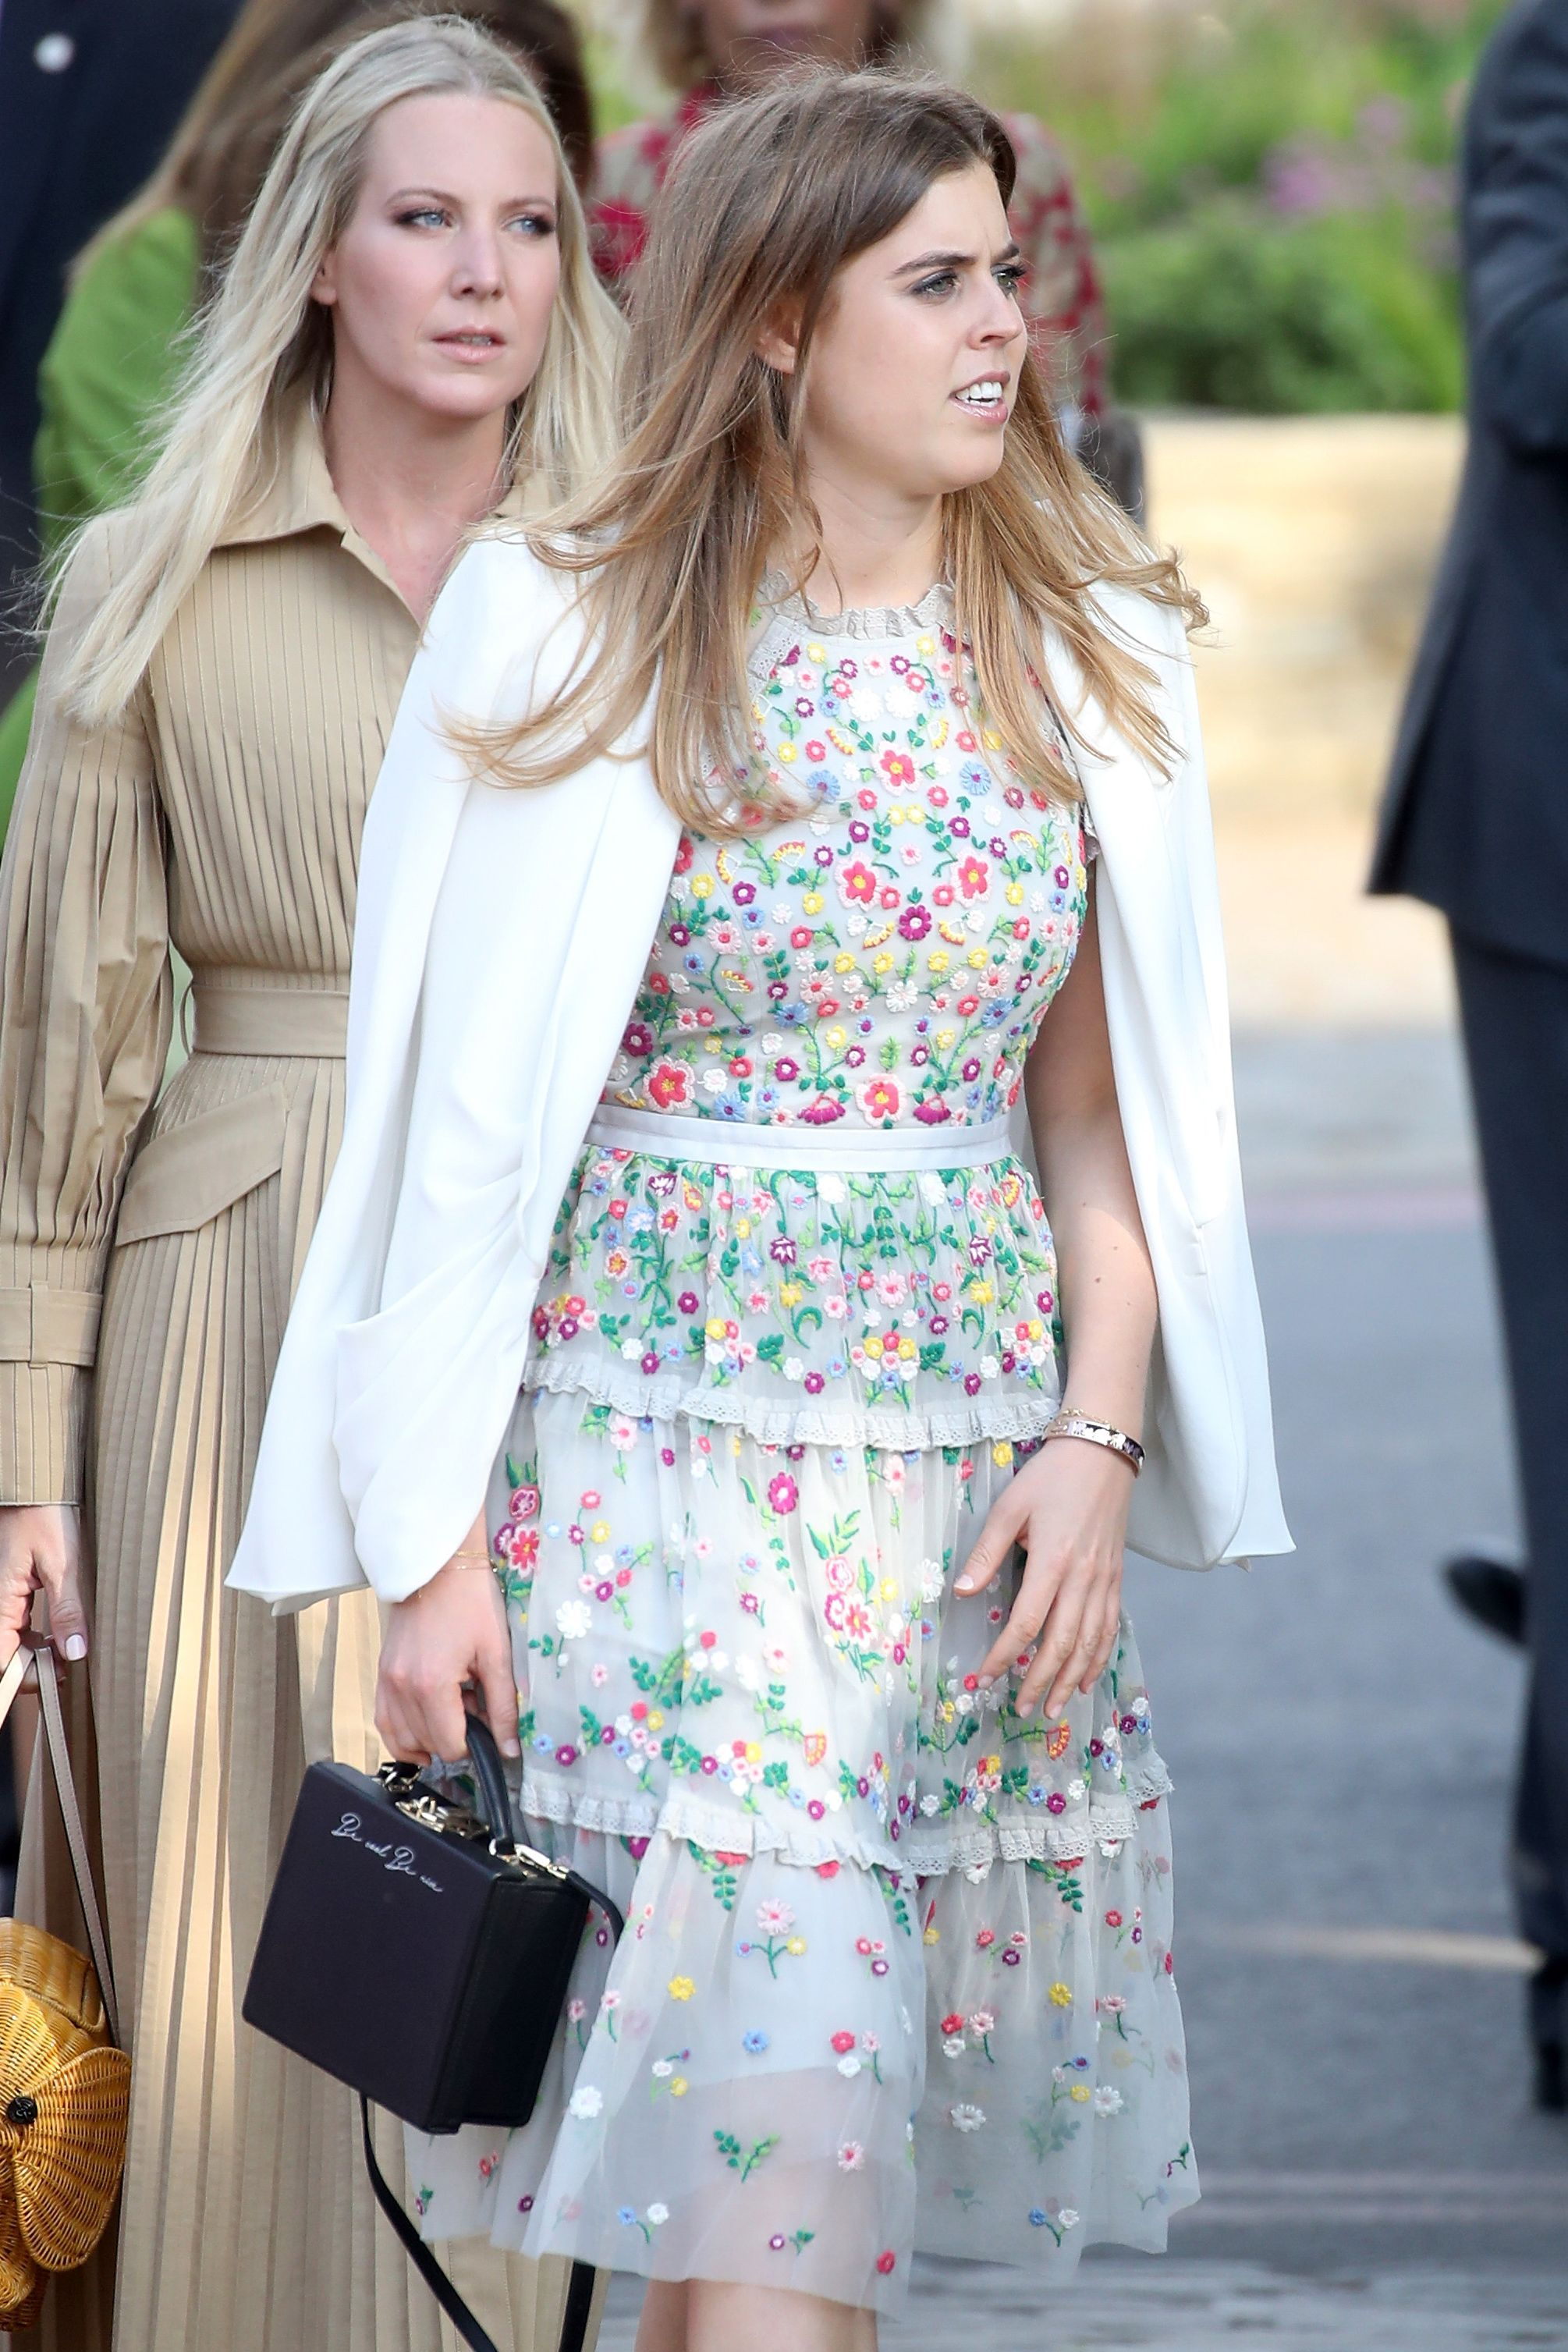 Princess Beatrice of York wore a tulle dress with little floral details to the 2018 Chelsea Flower Show in London.